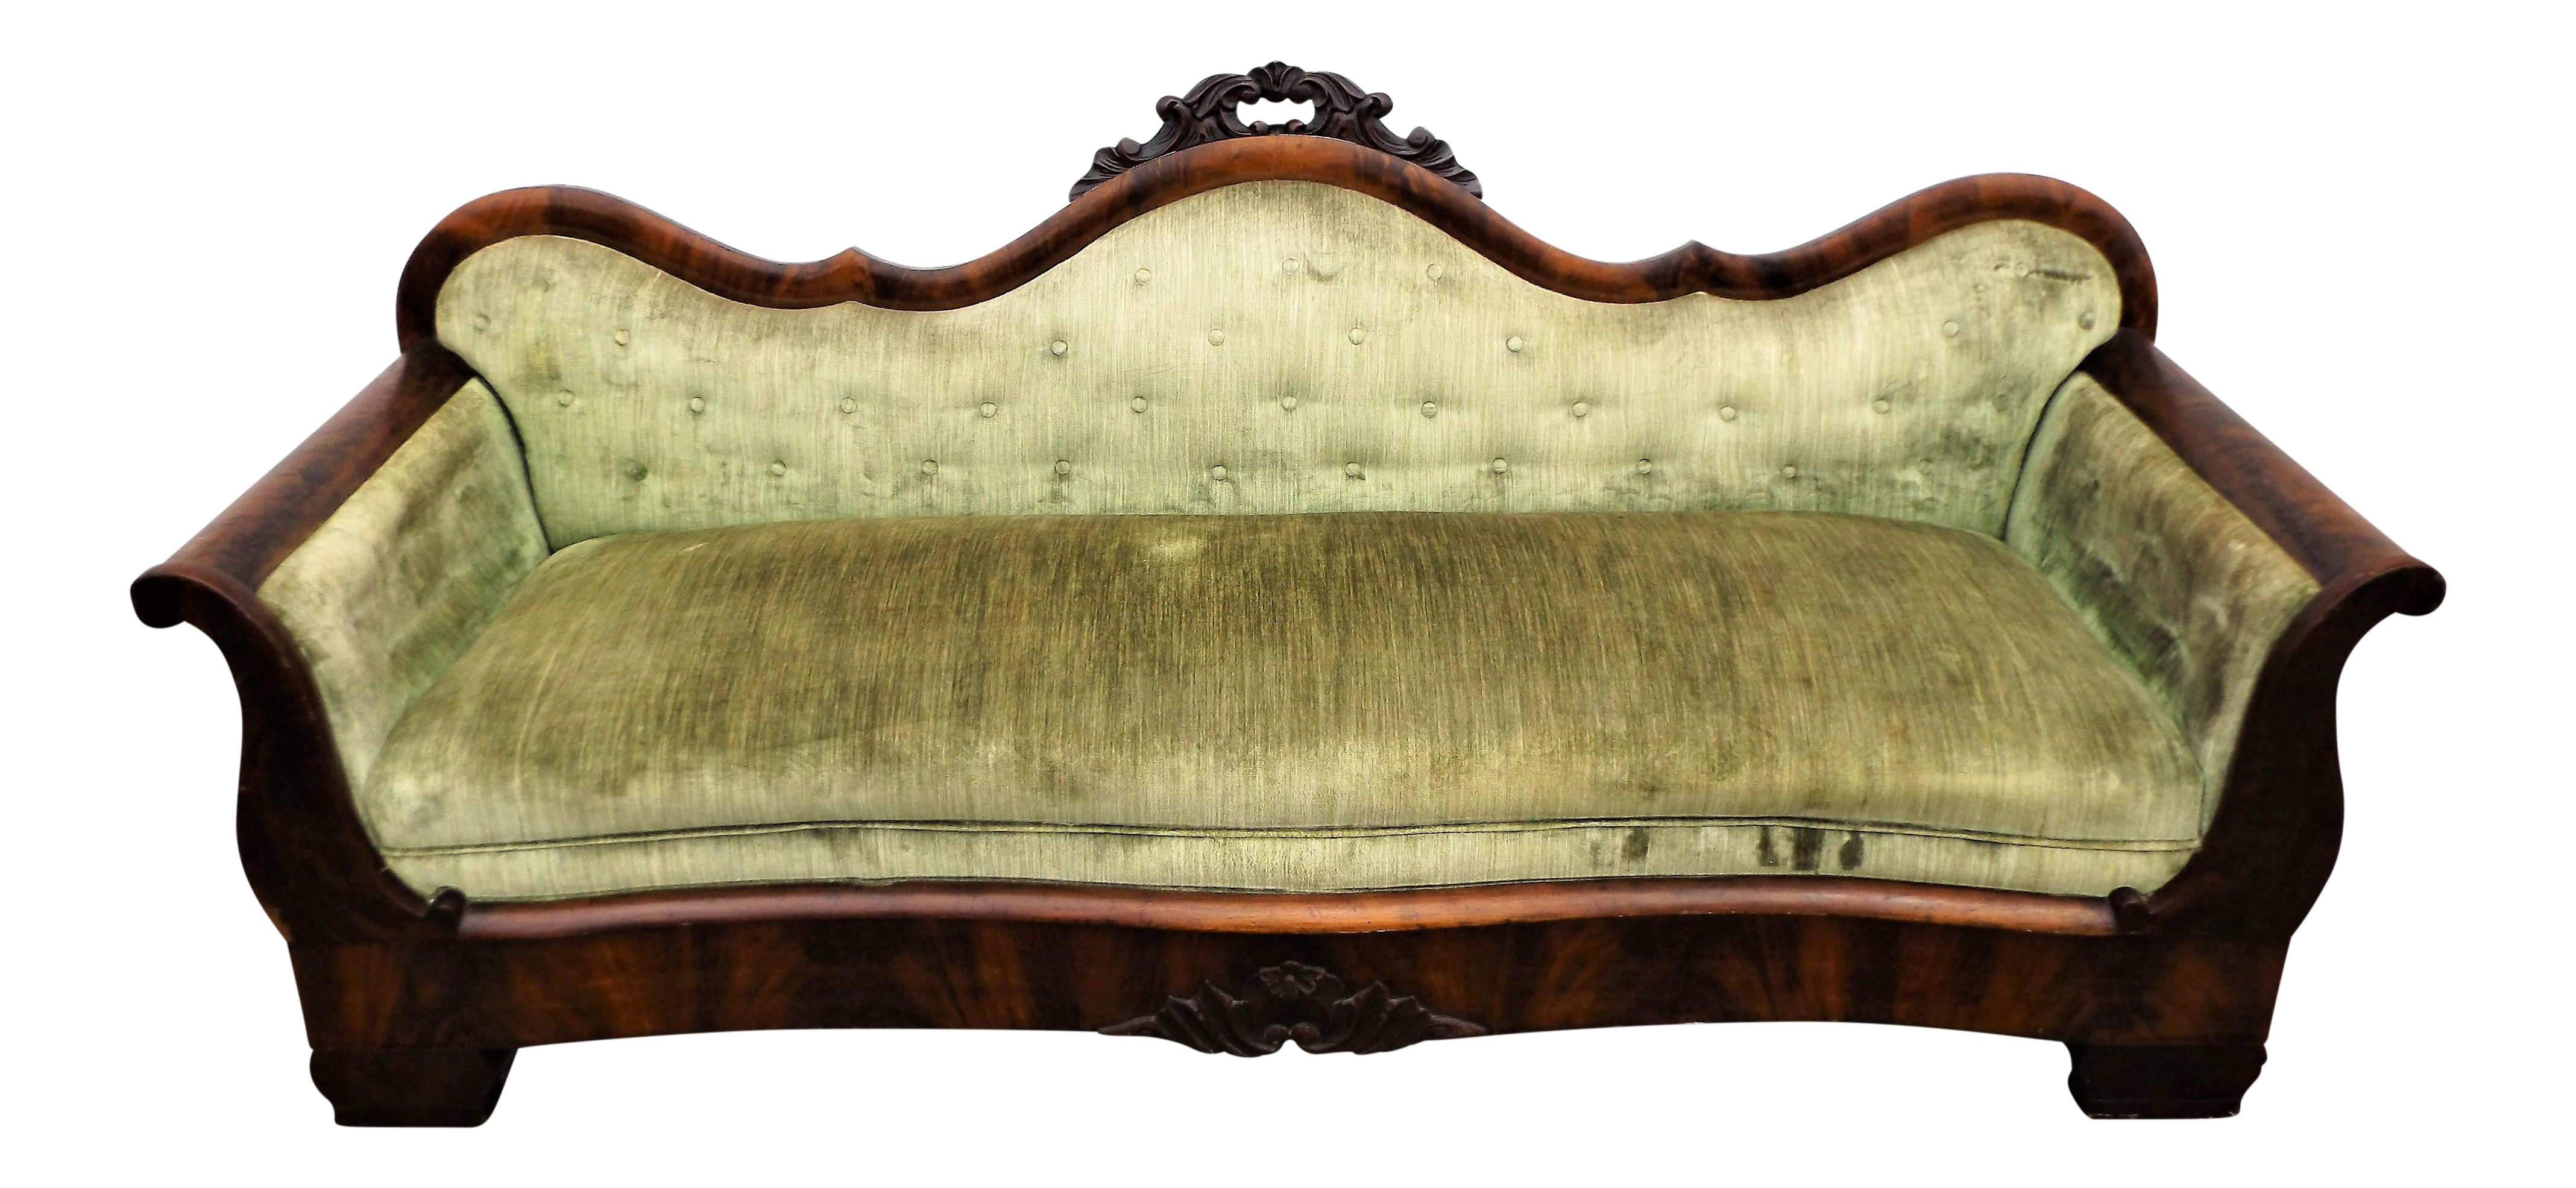 arm inspiration your wooden com couches cool couch deckedoutspaces colletion table for furniture boss antique of great sofa